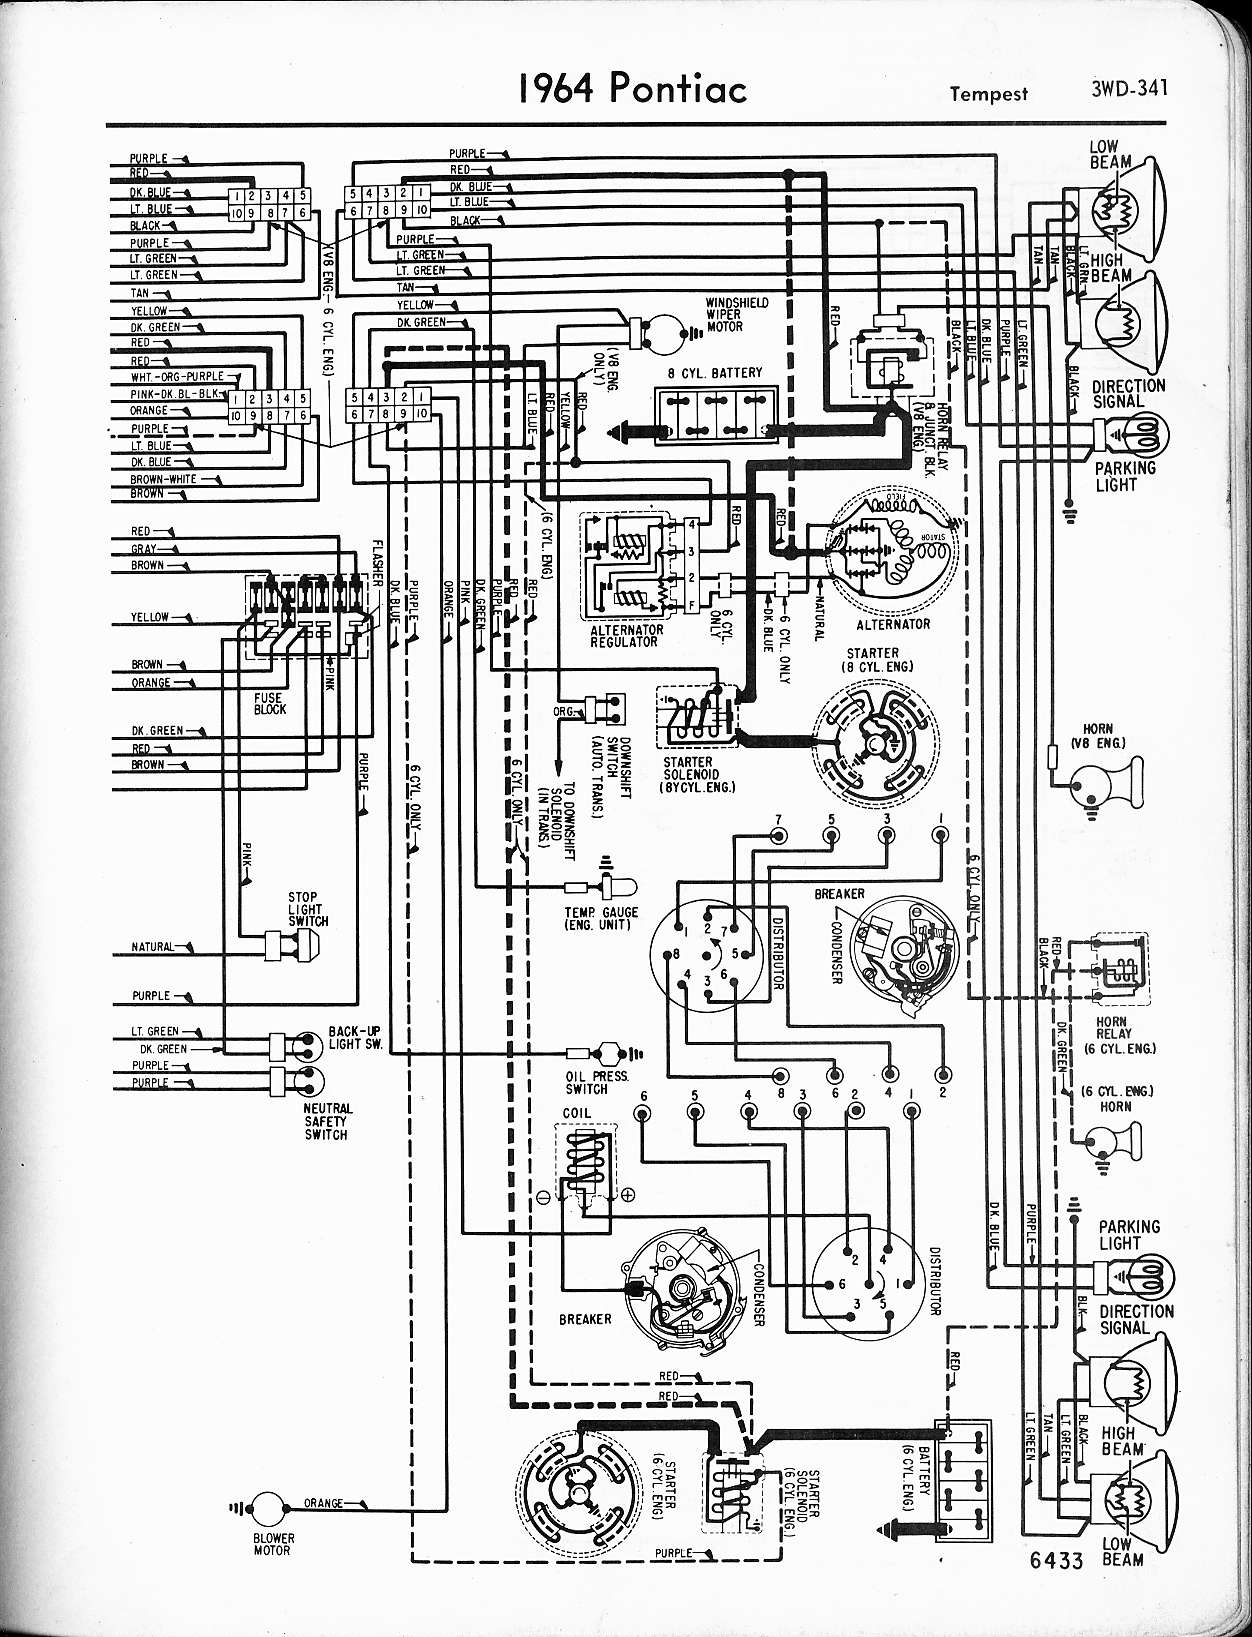 1971 gto wiring harness wiring diagram today 66 GTO Wiring-Diagram 1971 gto wiring harness wiring diagram 1969 firebird 1971 gto wiring diagram wiring diagram1971 gto wiring